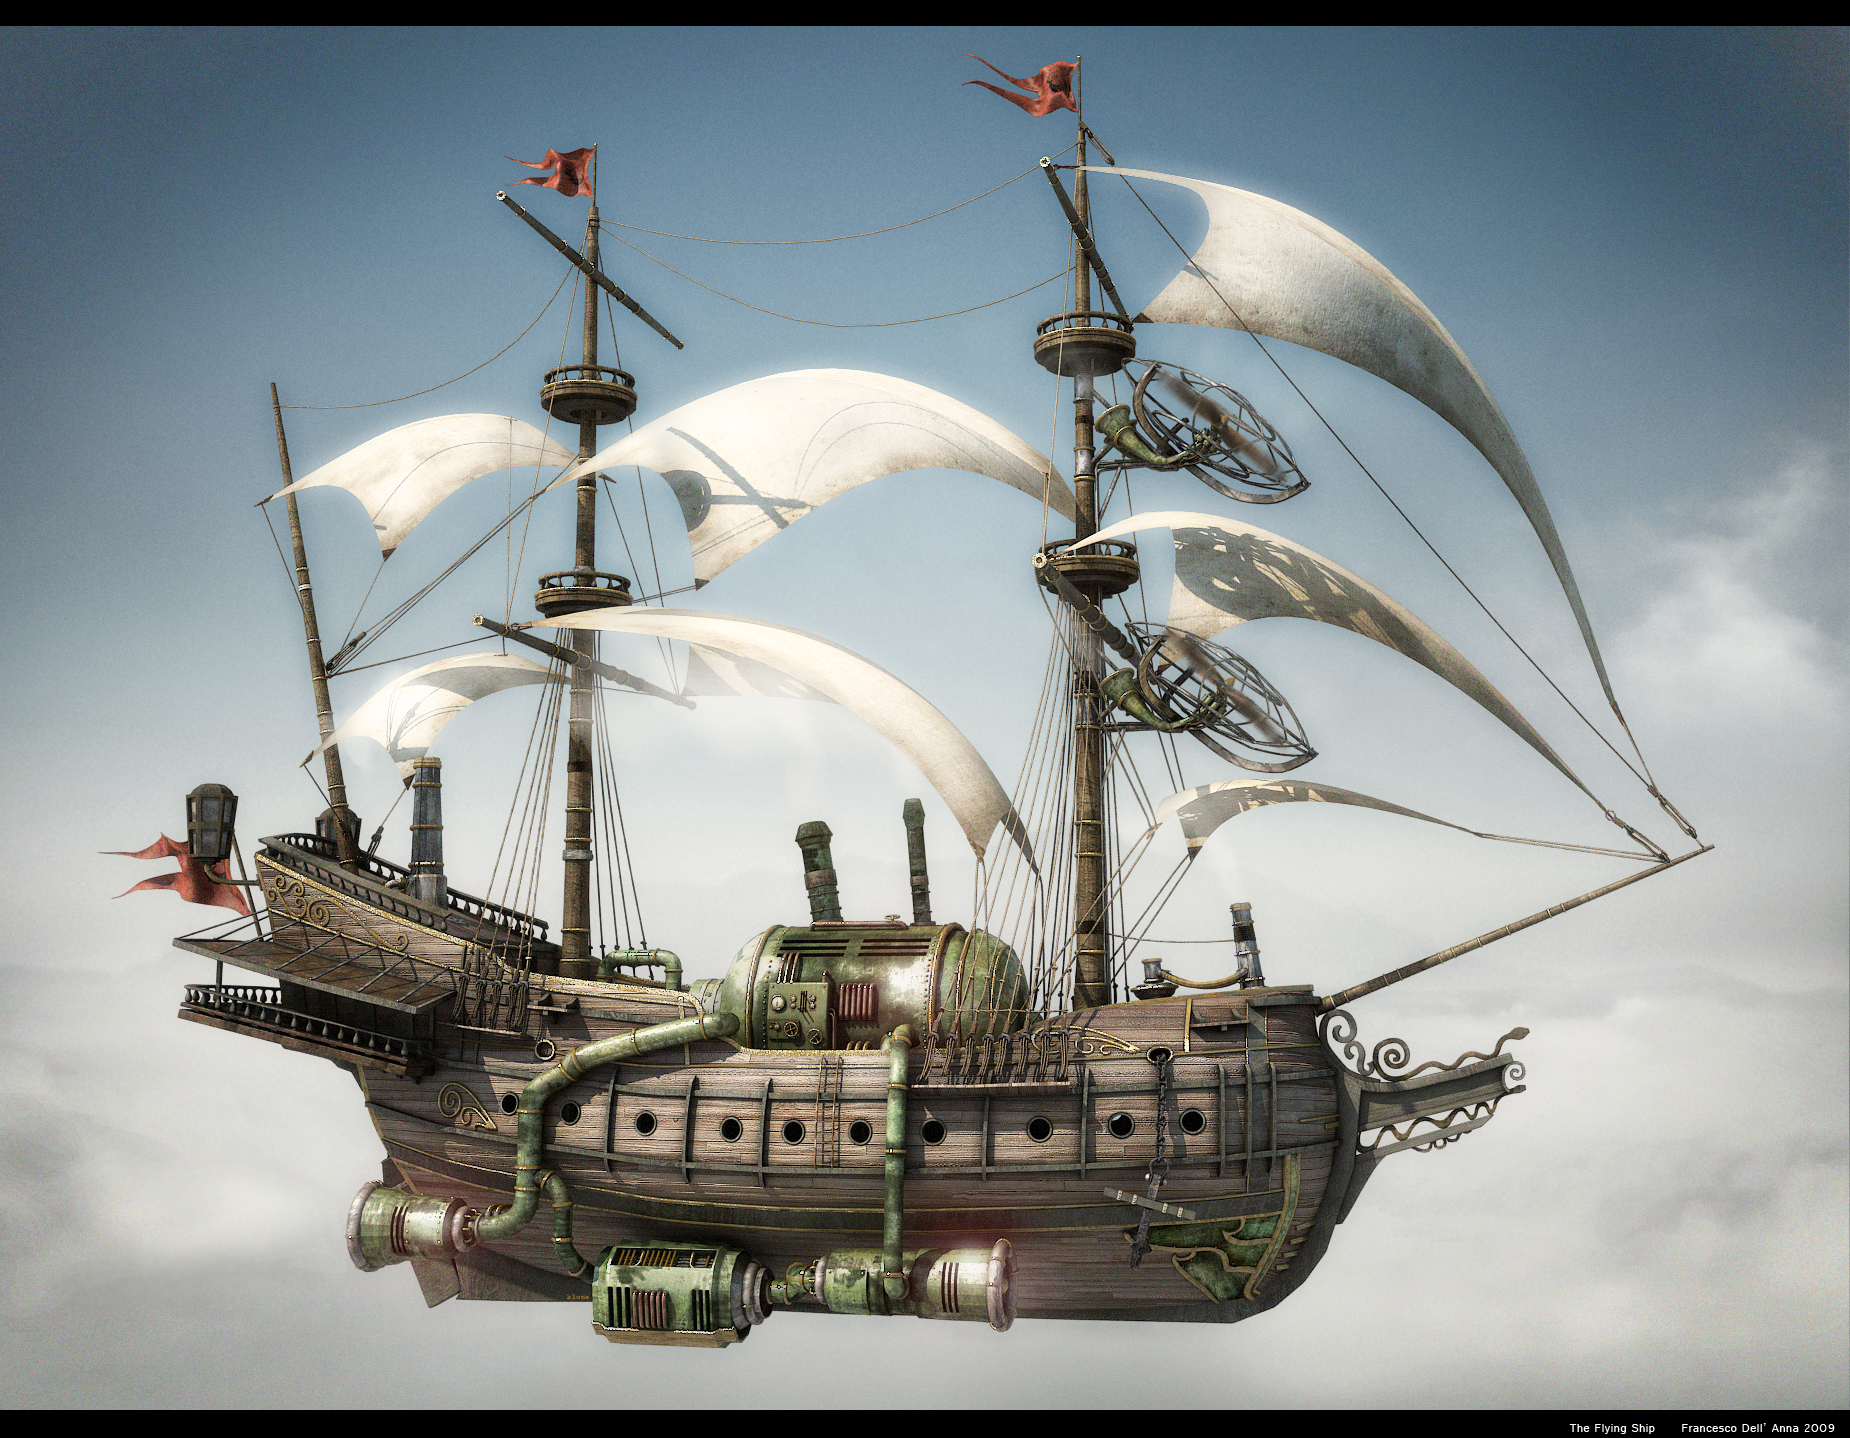 steampunk_ships_woot_vehicles_airship_ship_sails_desktop_1850x1438_hd-wallpaper-623592.jpg